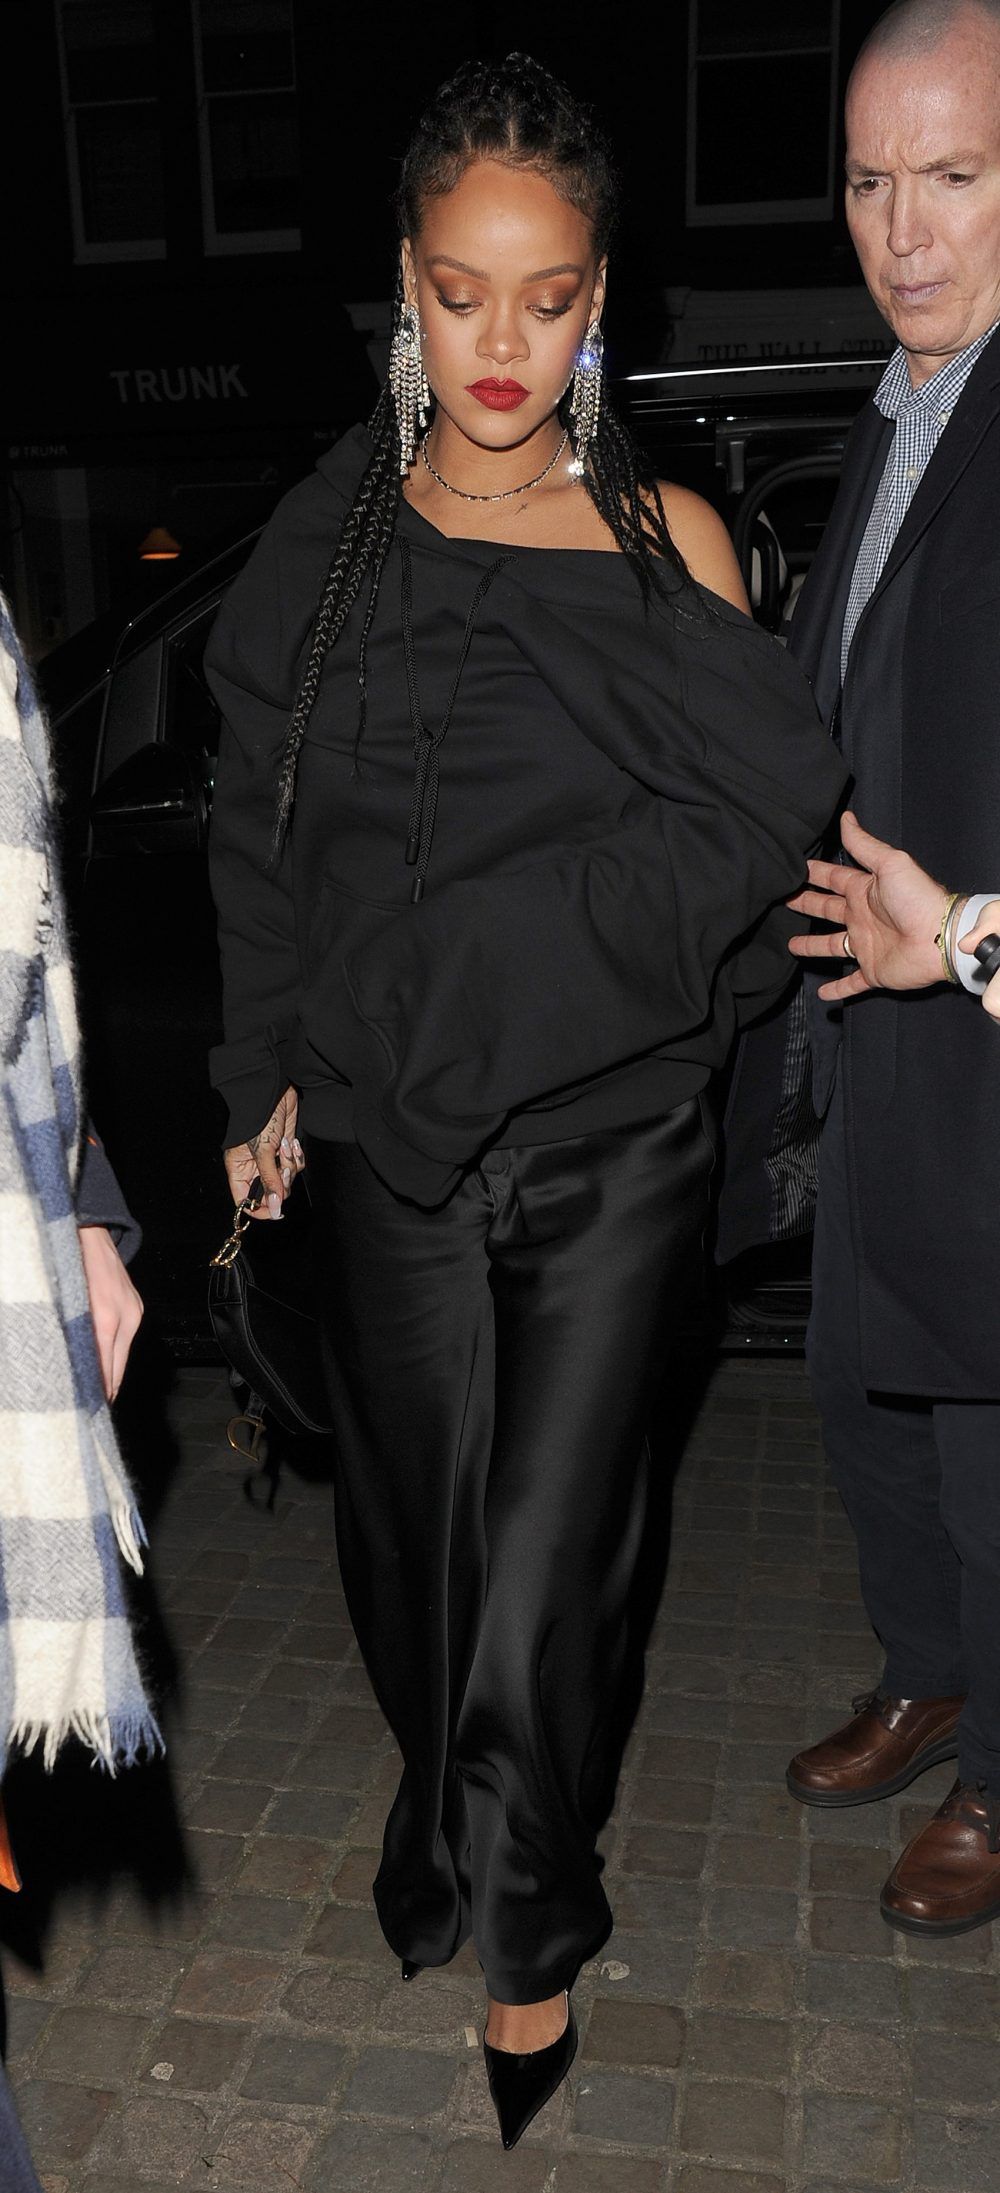 Rihanna arrives at the Chiltern Firehouse for a BAFTA afterparty at 4.30am. The singer stayed until 6.30am. Rihanna was wearing an all black outfit, plus some eye catching earrings and rings